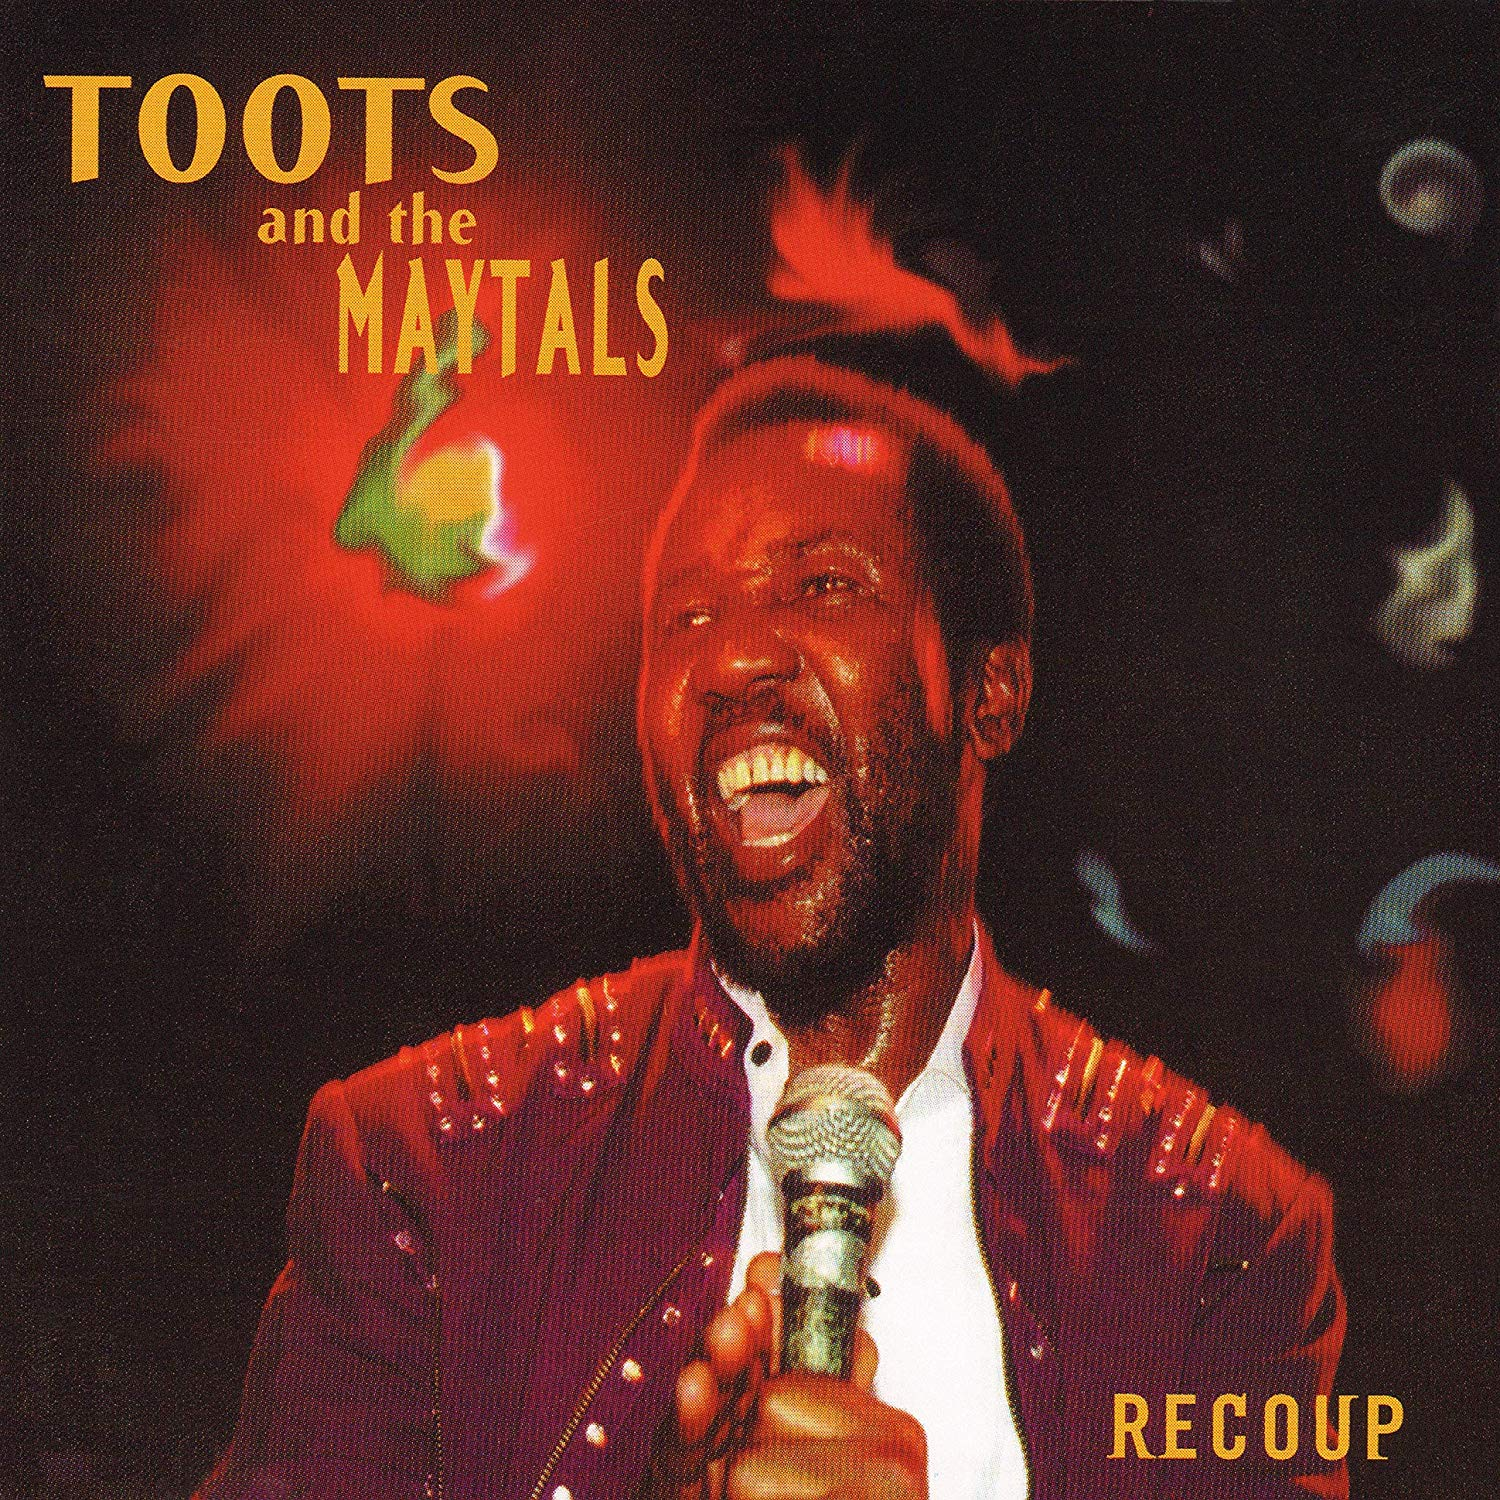 Toots & The Maytals - Recoupe